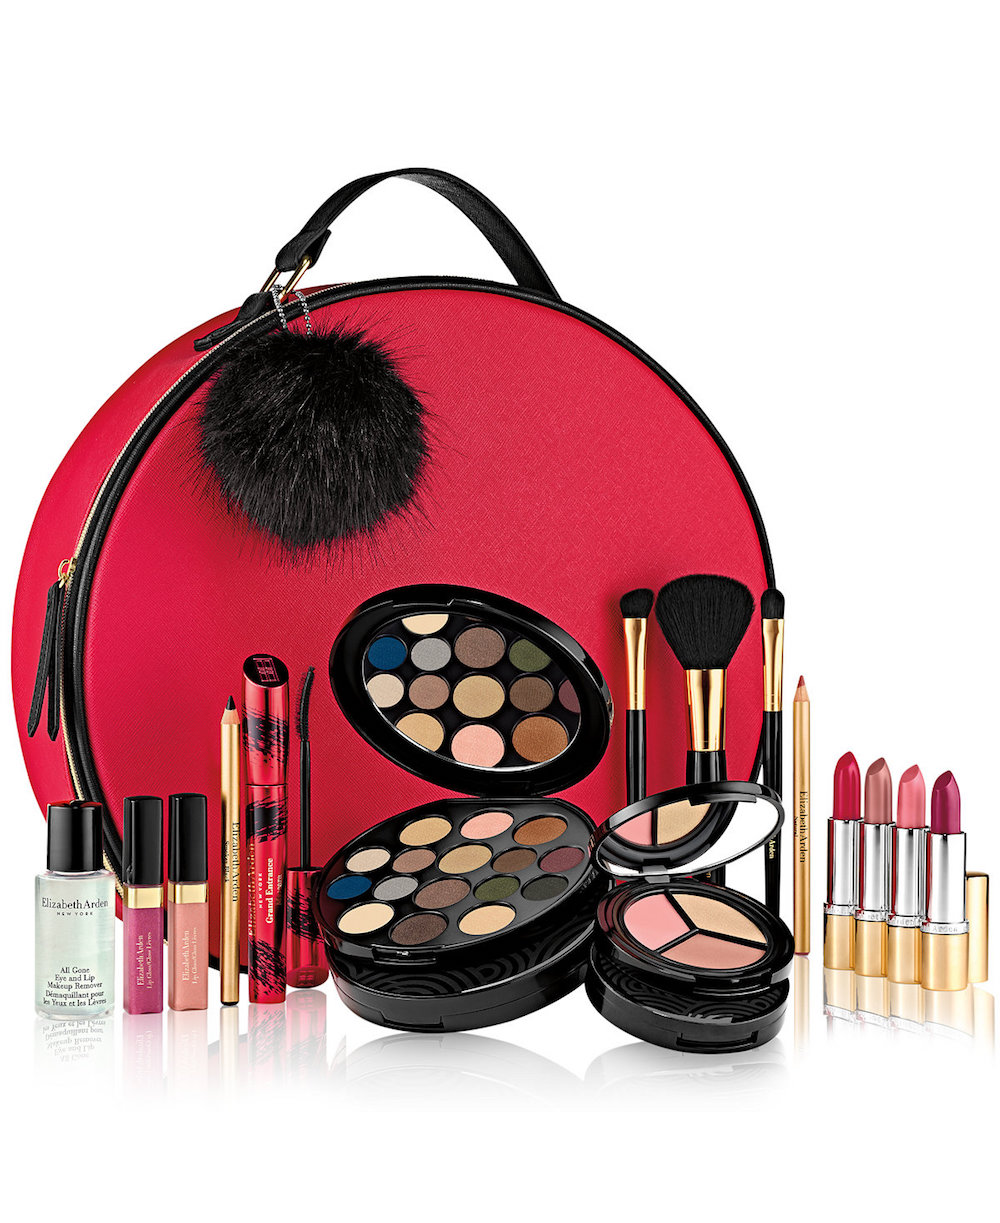 10 All-in-One Makeup Kits to Streamline Your Beauty Routine